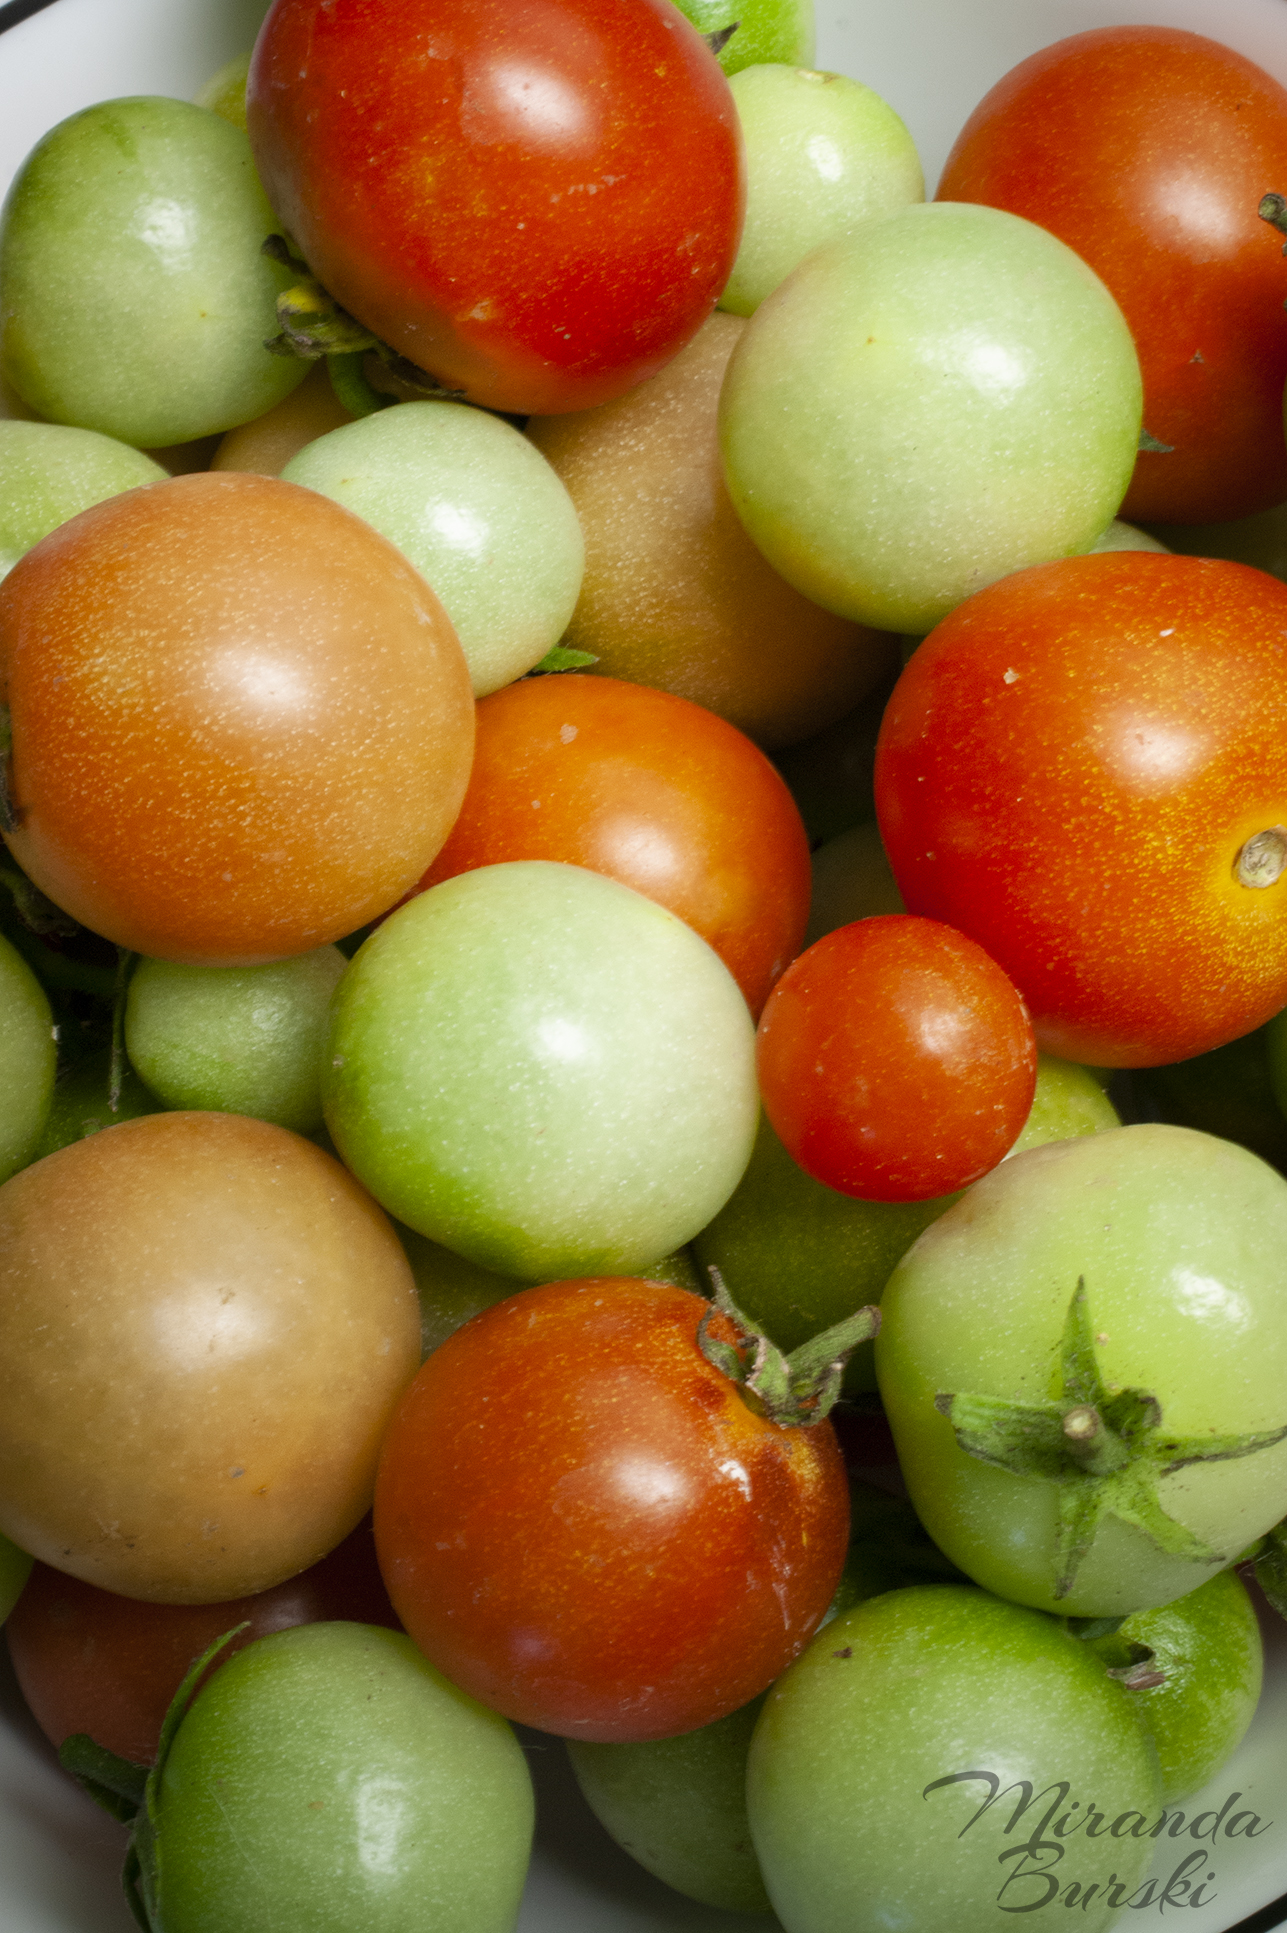 A bowl of green, orange and red cherry tomatoes.